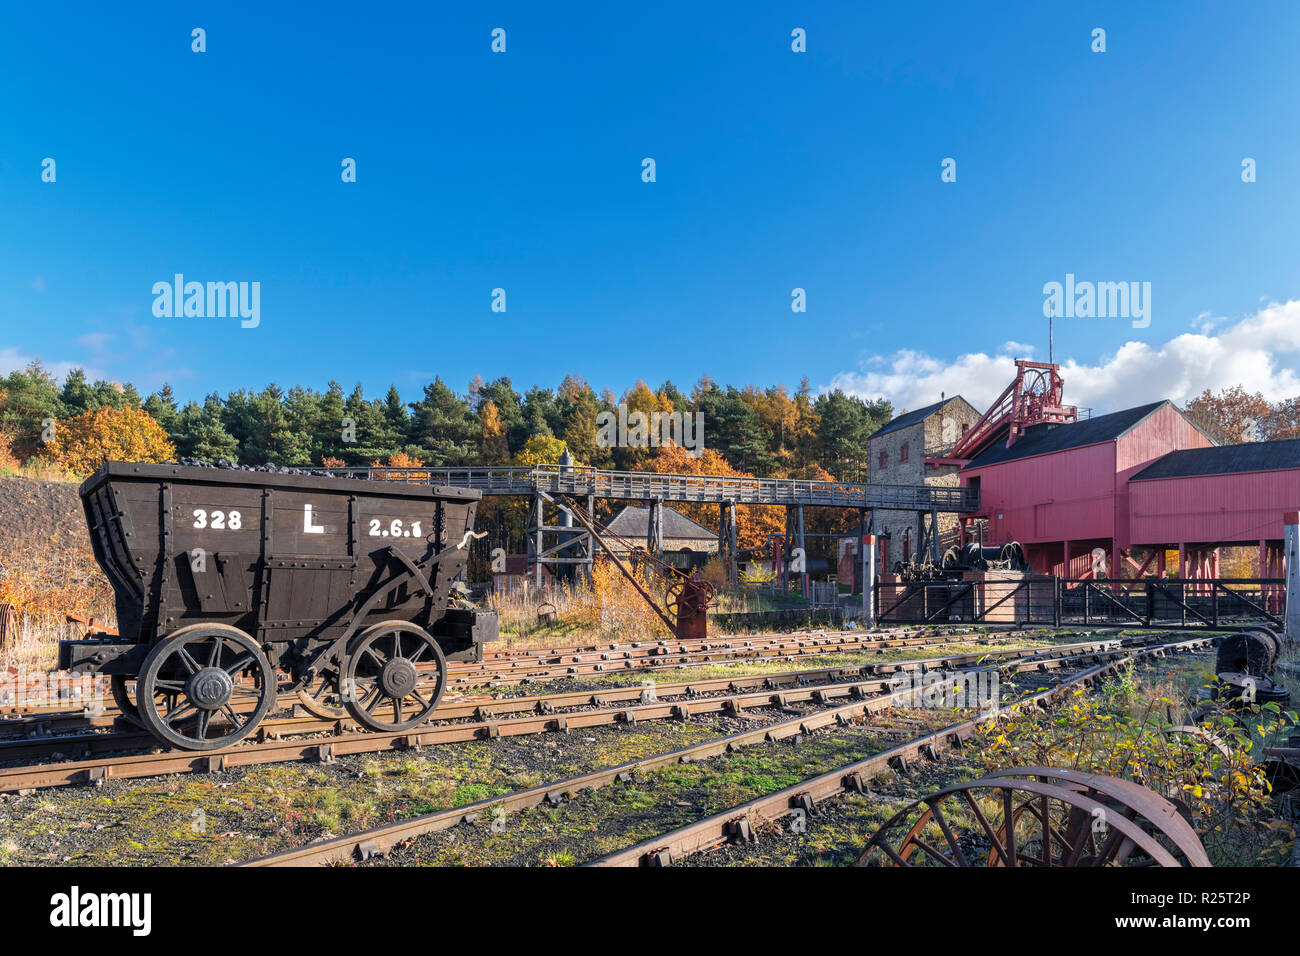 Colliery at Beamish Open Air Museum, Beamish, County Durham, England UK - Stock Image